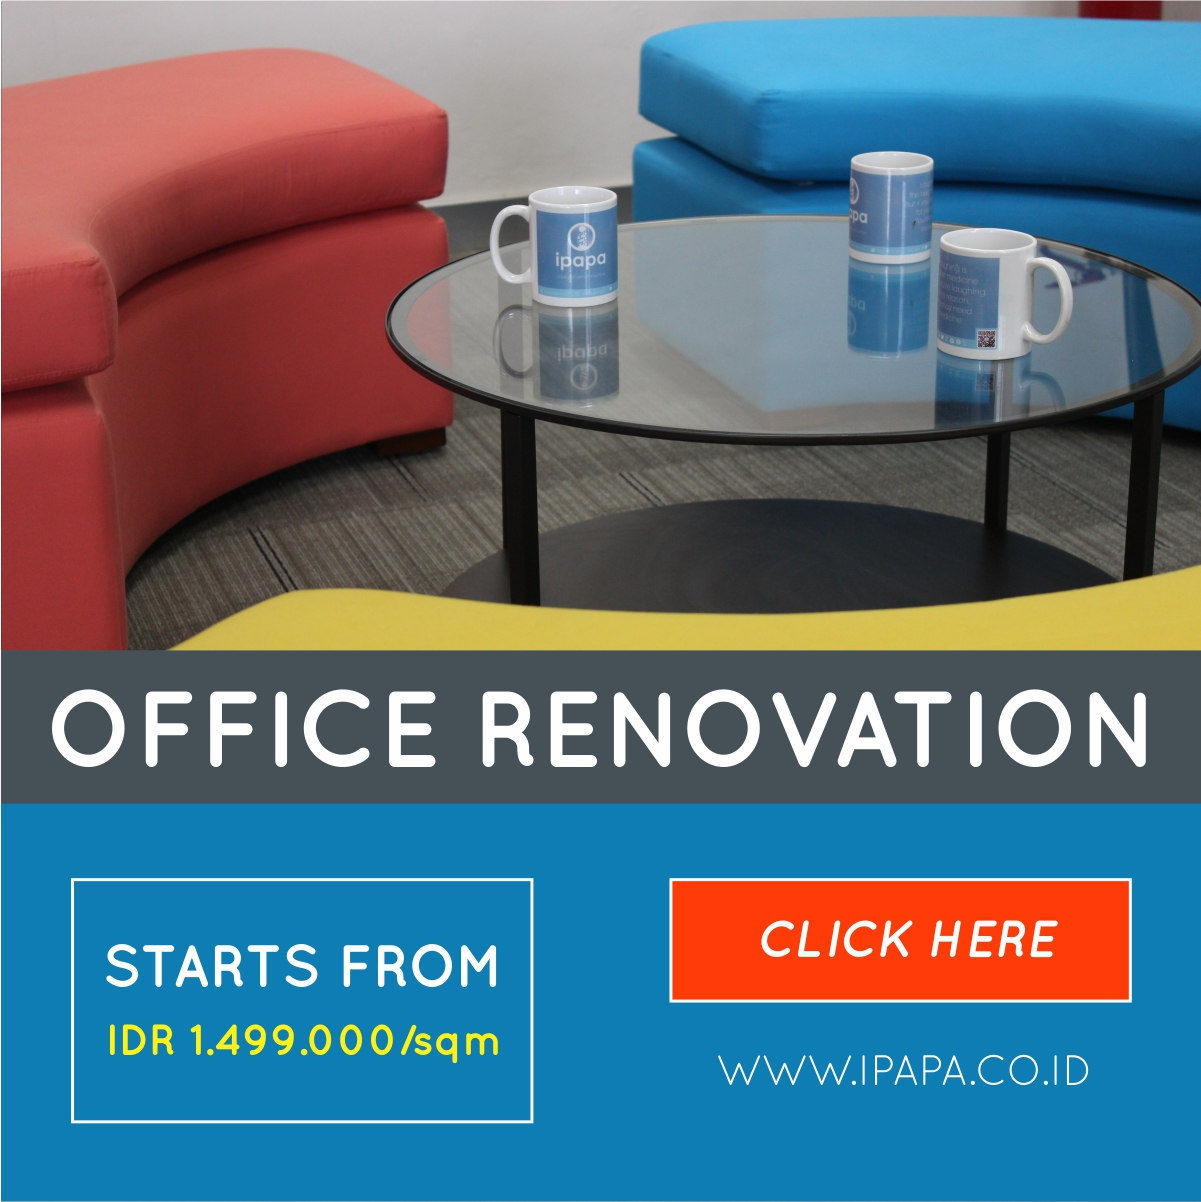 Office Renovation Website